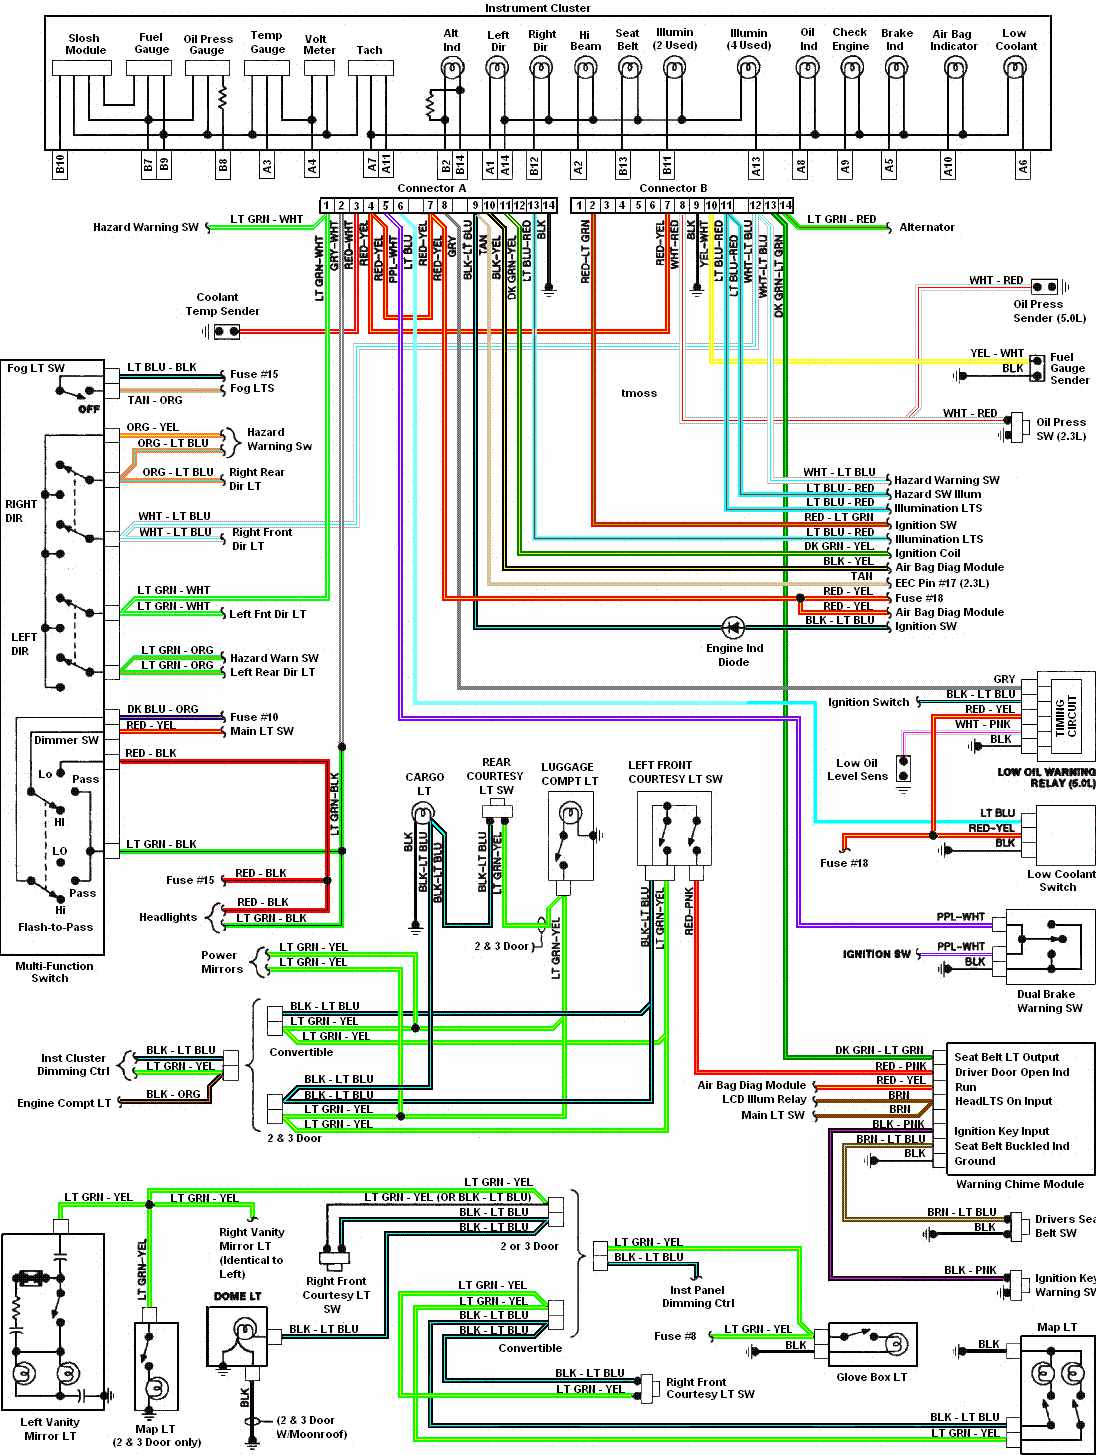 92 mustang turn signal wiring diagram  | 1405 x 1872